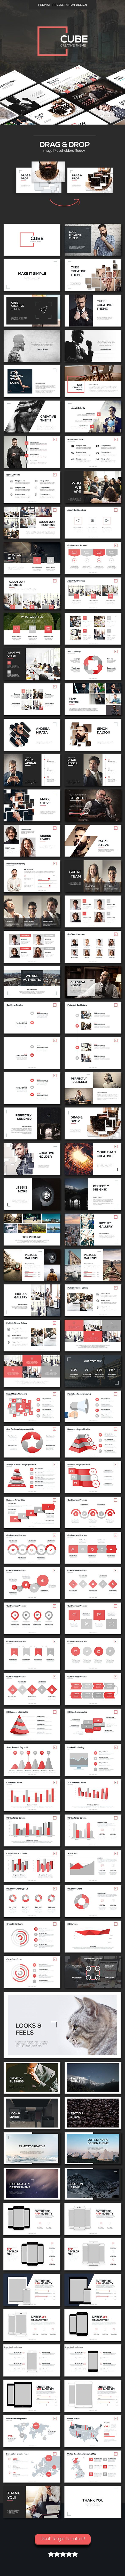 CUBE - Creative PowerPoint Slides Template. Download here: http://graphicriver.net/item/cube-creative-theme/16755809?ref=ksioks